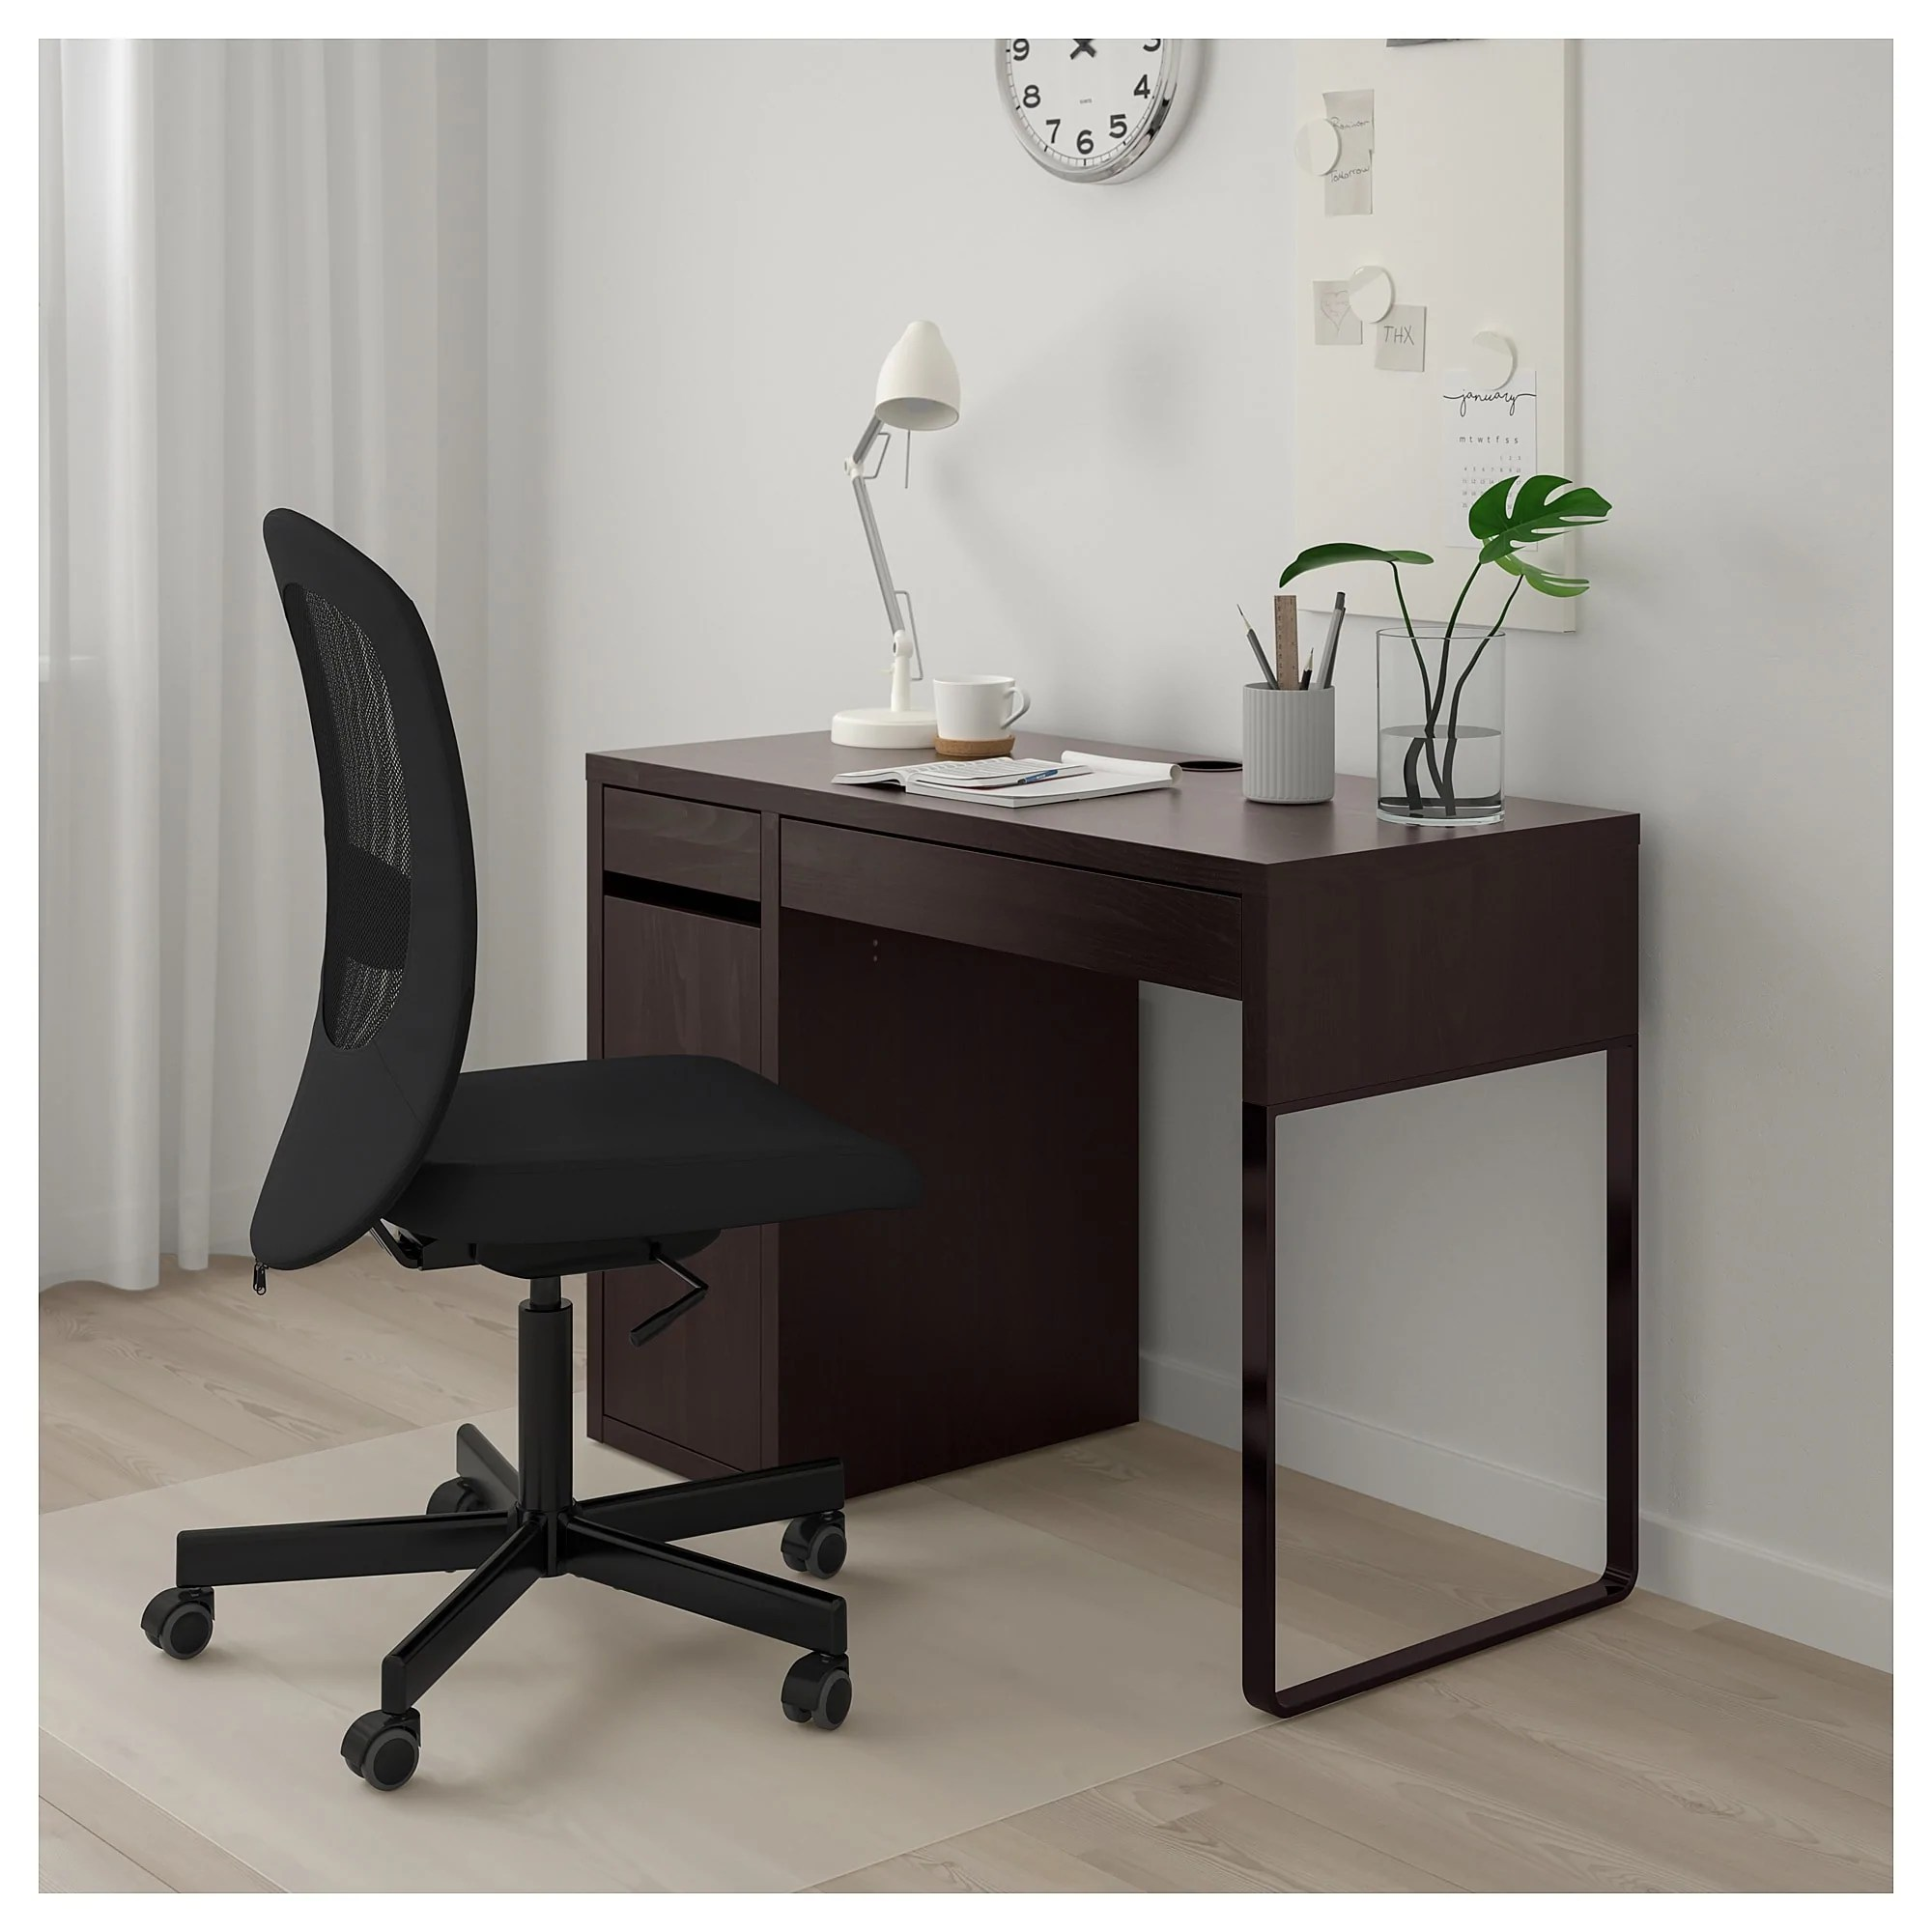 Study Table And Chair Basic Studio Apartment Single Bed Study Table Chair